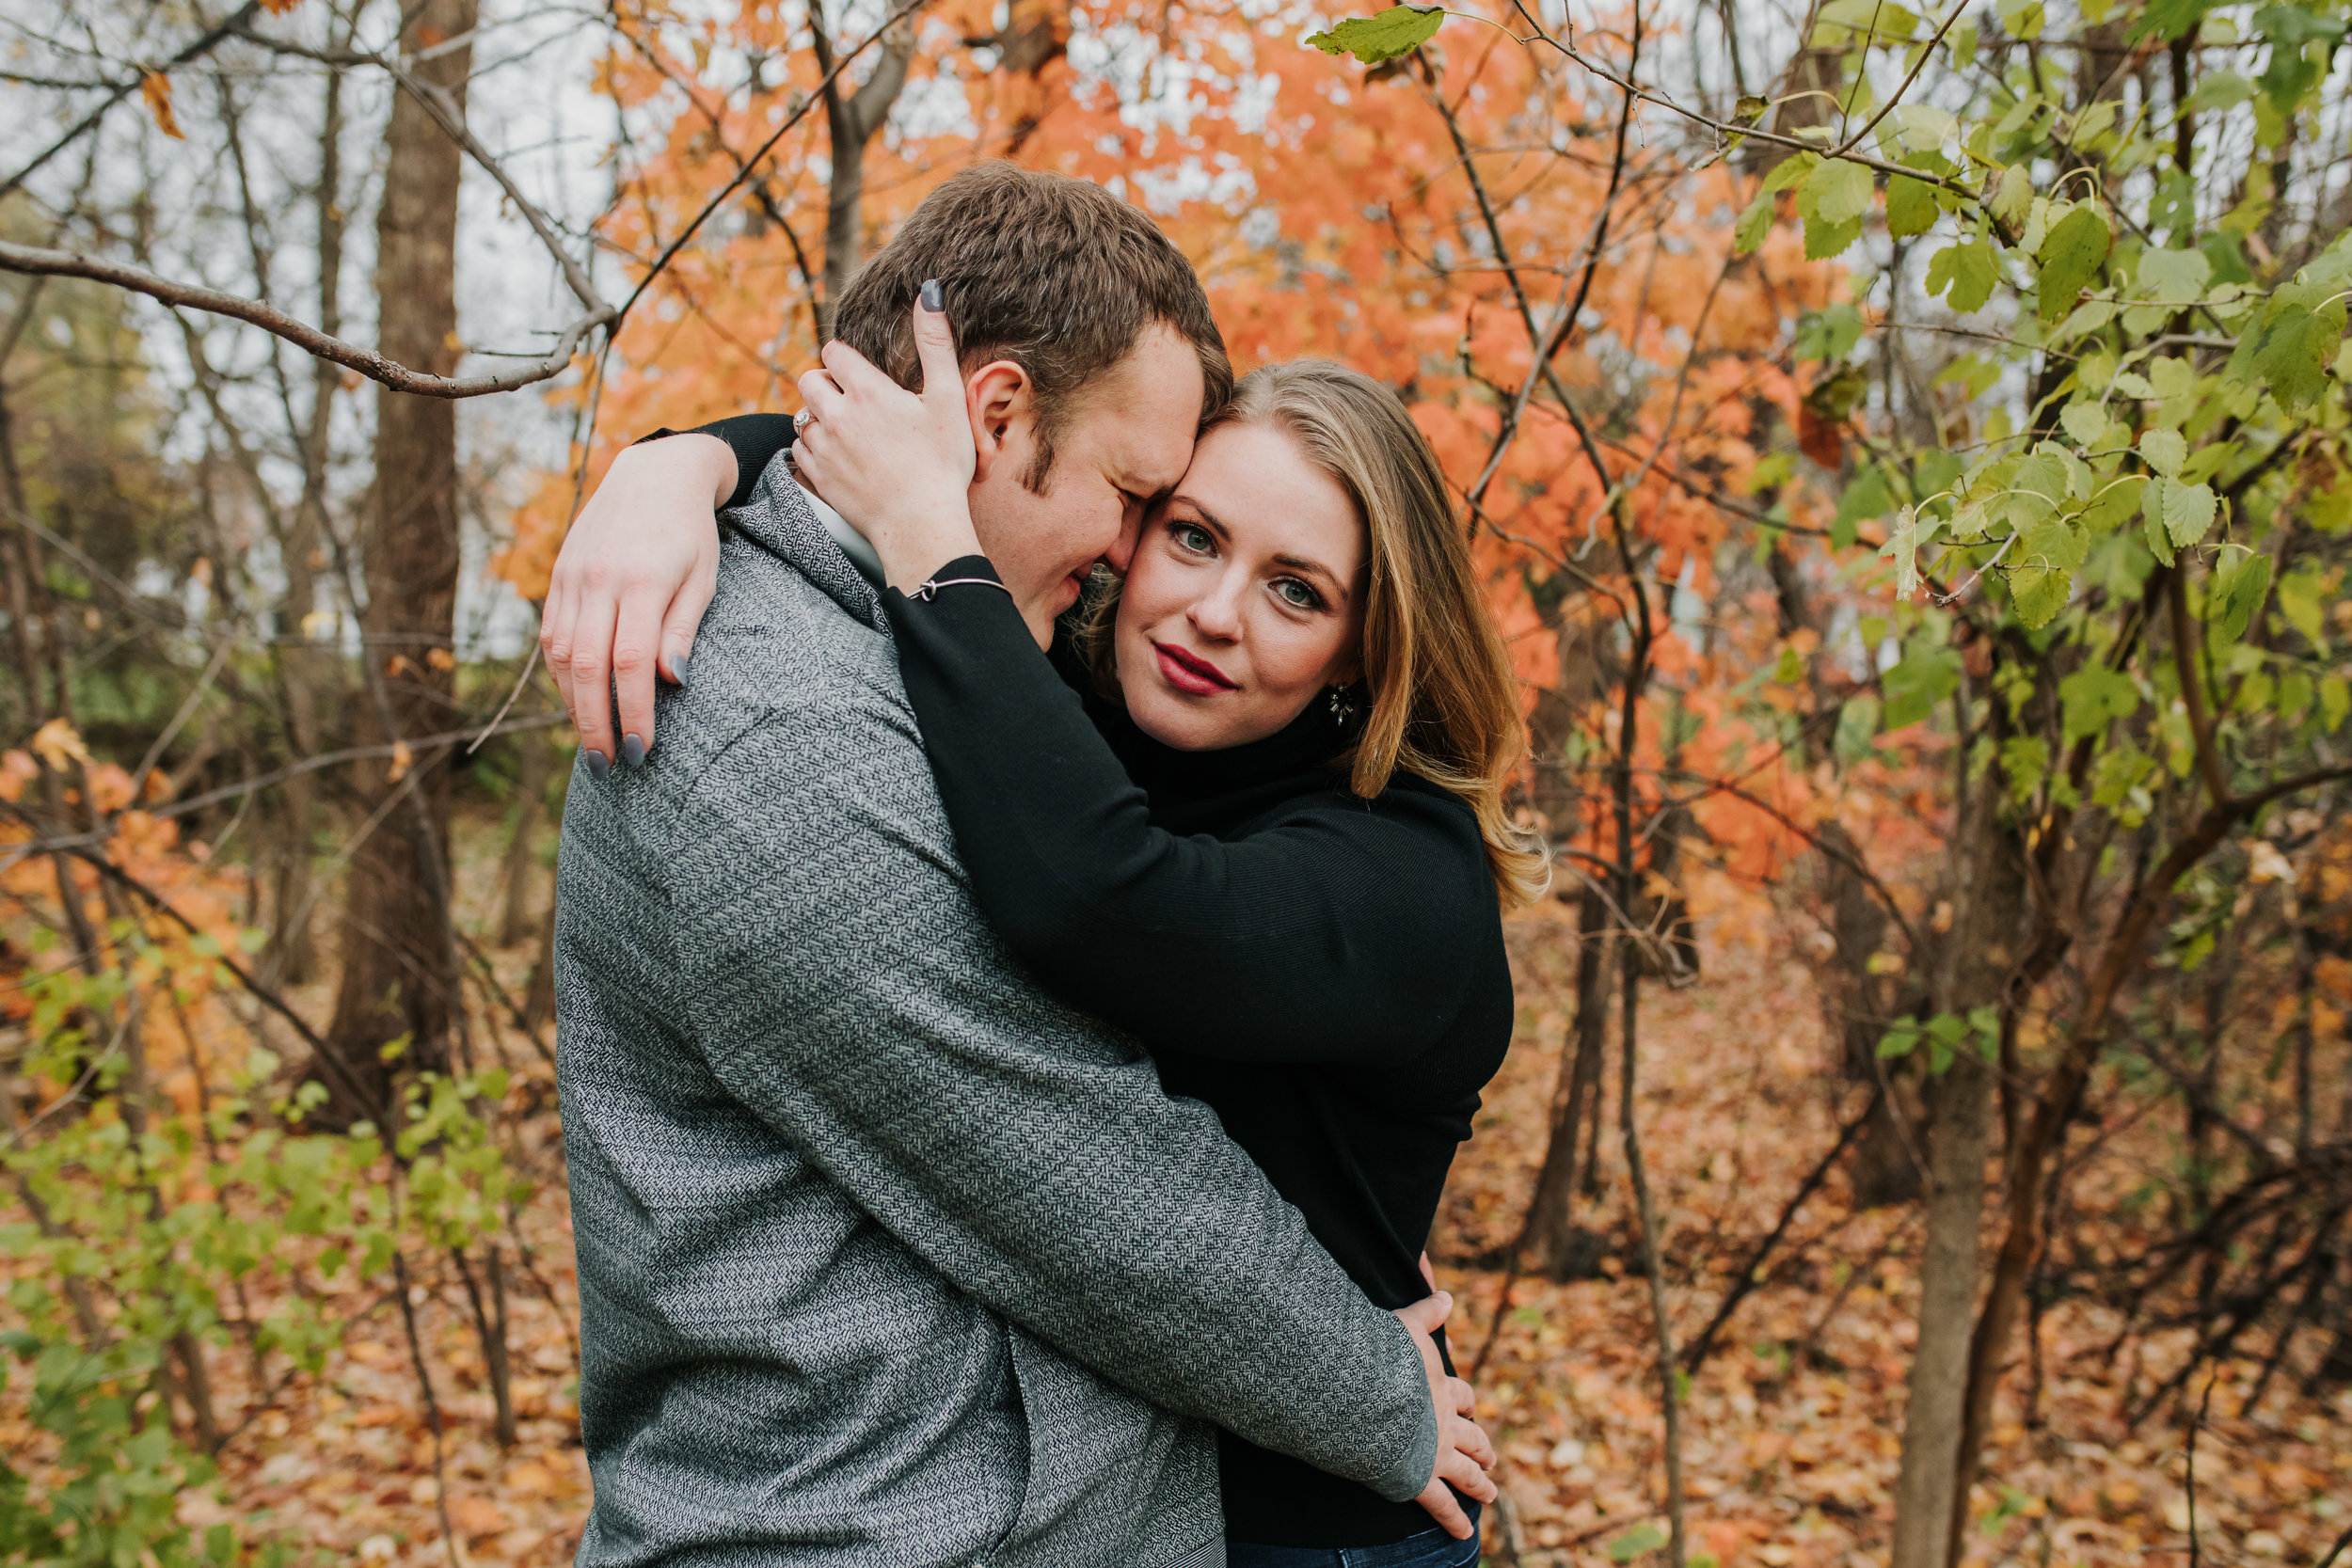 Meghan & Igor - Engaged - Nathaniel Jensen Photography - Omaha Nebraska Wedding Photograper-65.jpg